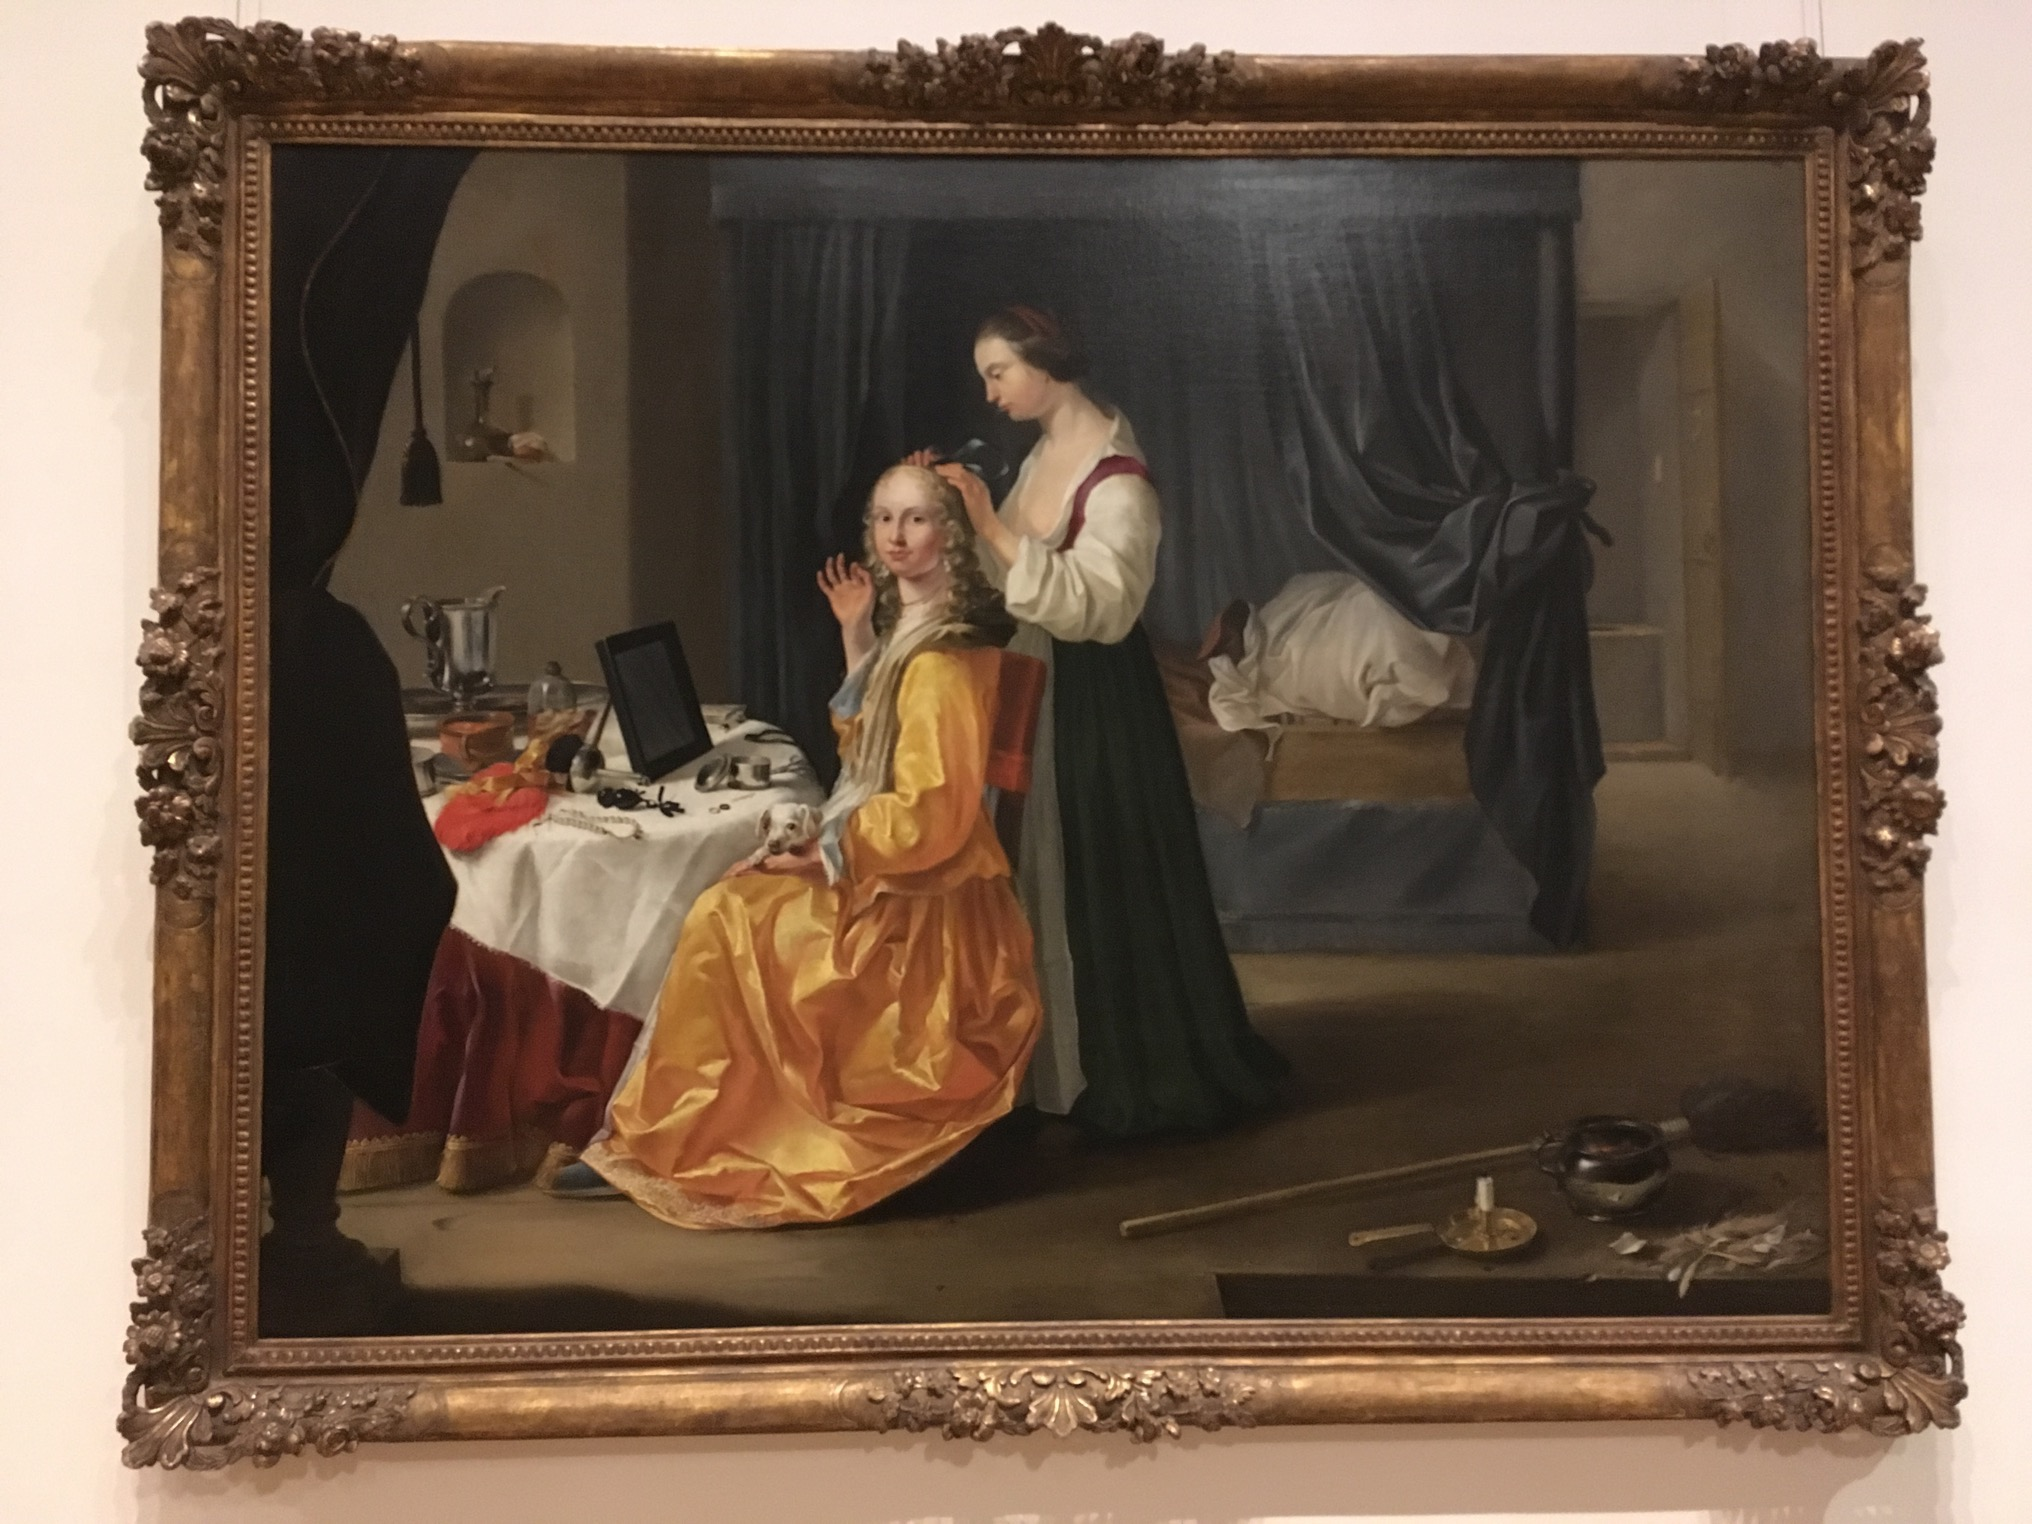 Posh lady at a table in her bedchamber, attended by her handmaiden, with a propped-up slab on the table before her that looks like a small mirror (but which is almost certainly an iPad)